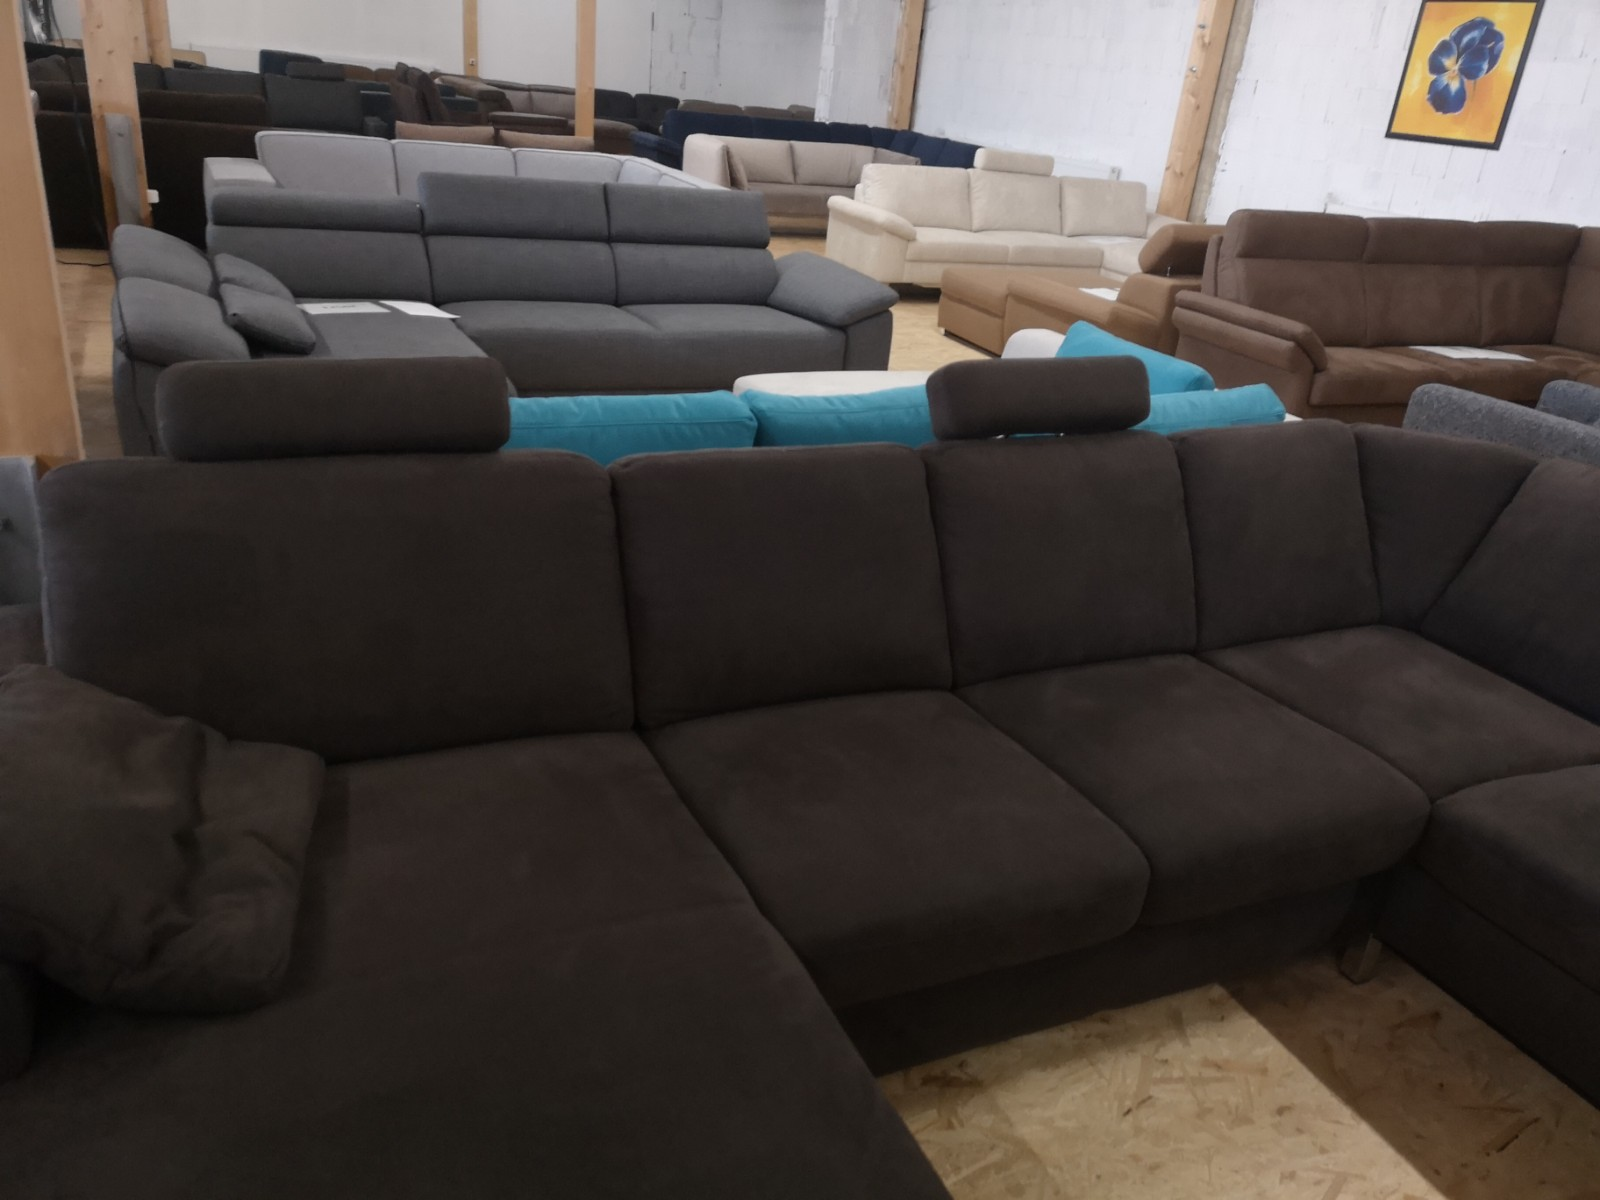 xl sofa wohnlandschaften marken sofa couch 3 sofa. Black Bedroom Furniture Sets. Home Design Ideas